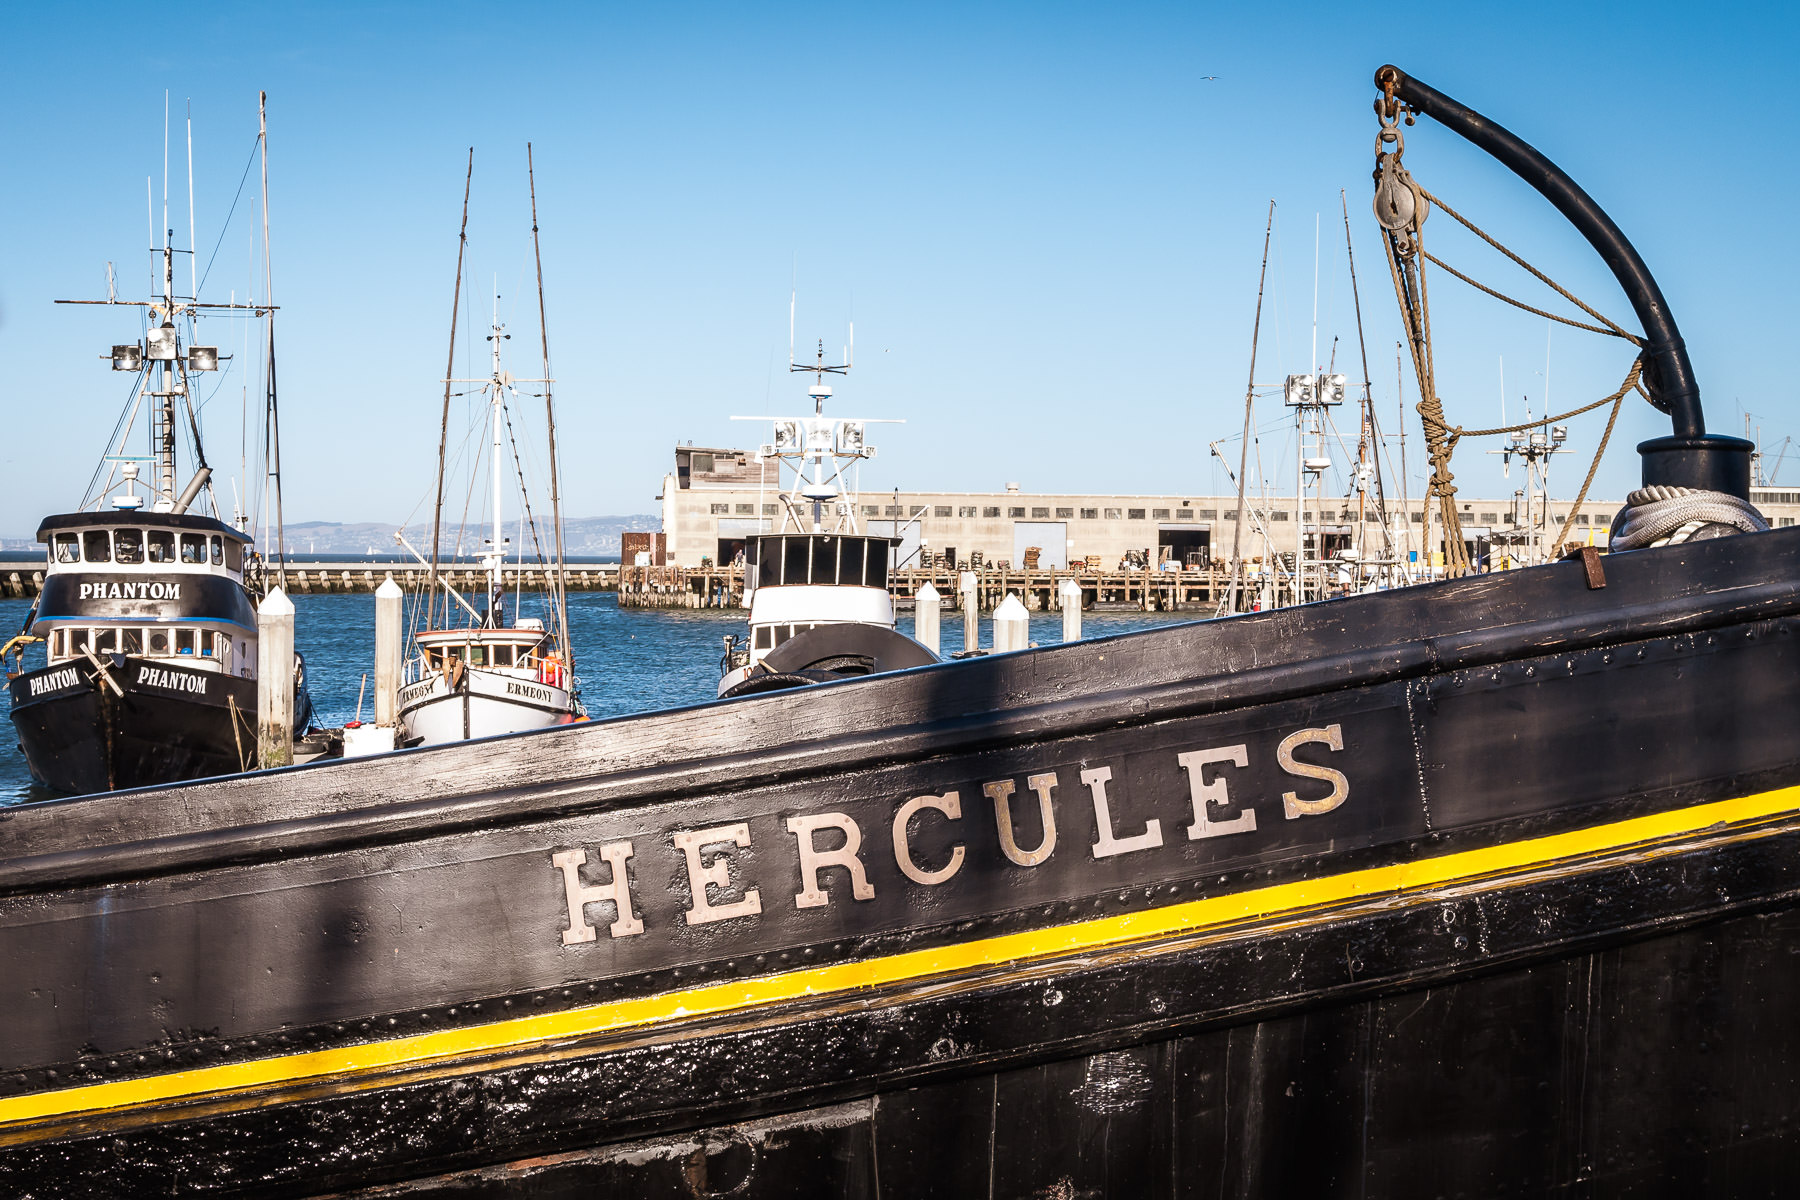 Detail of the 1907 Hercules, a tugboat now moored at the San Francisco Maritime National Historical Park at Fisherman's Wharf.